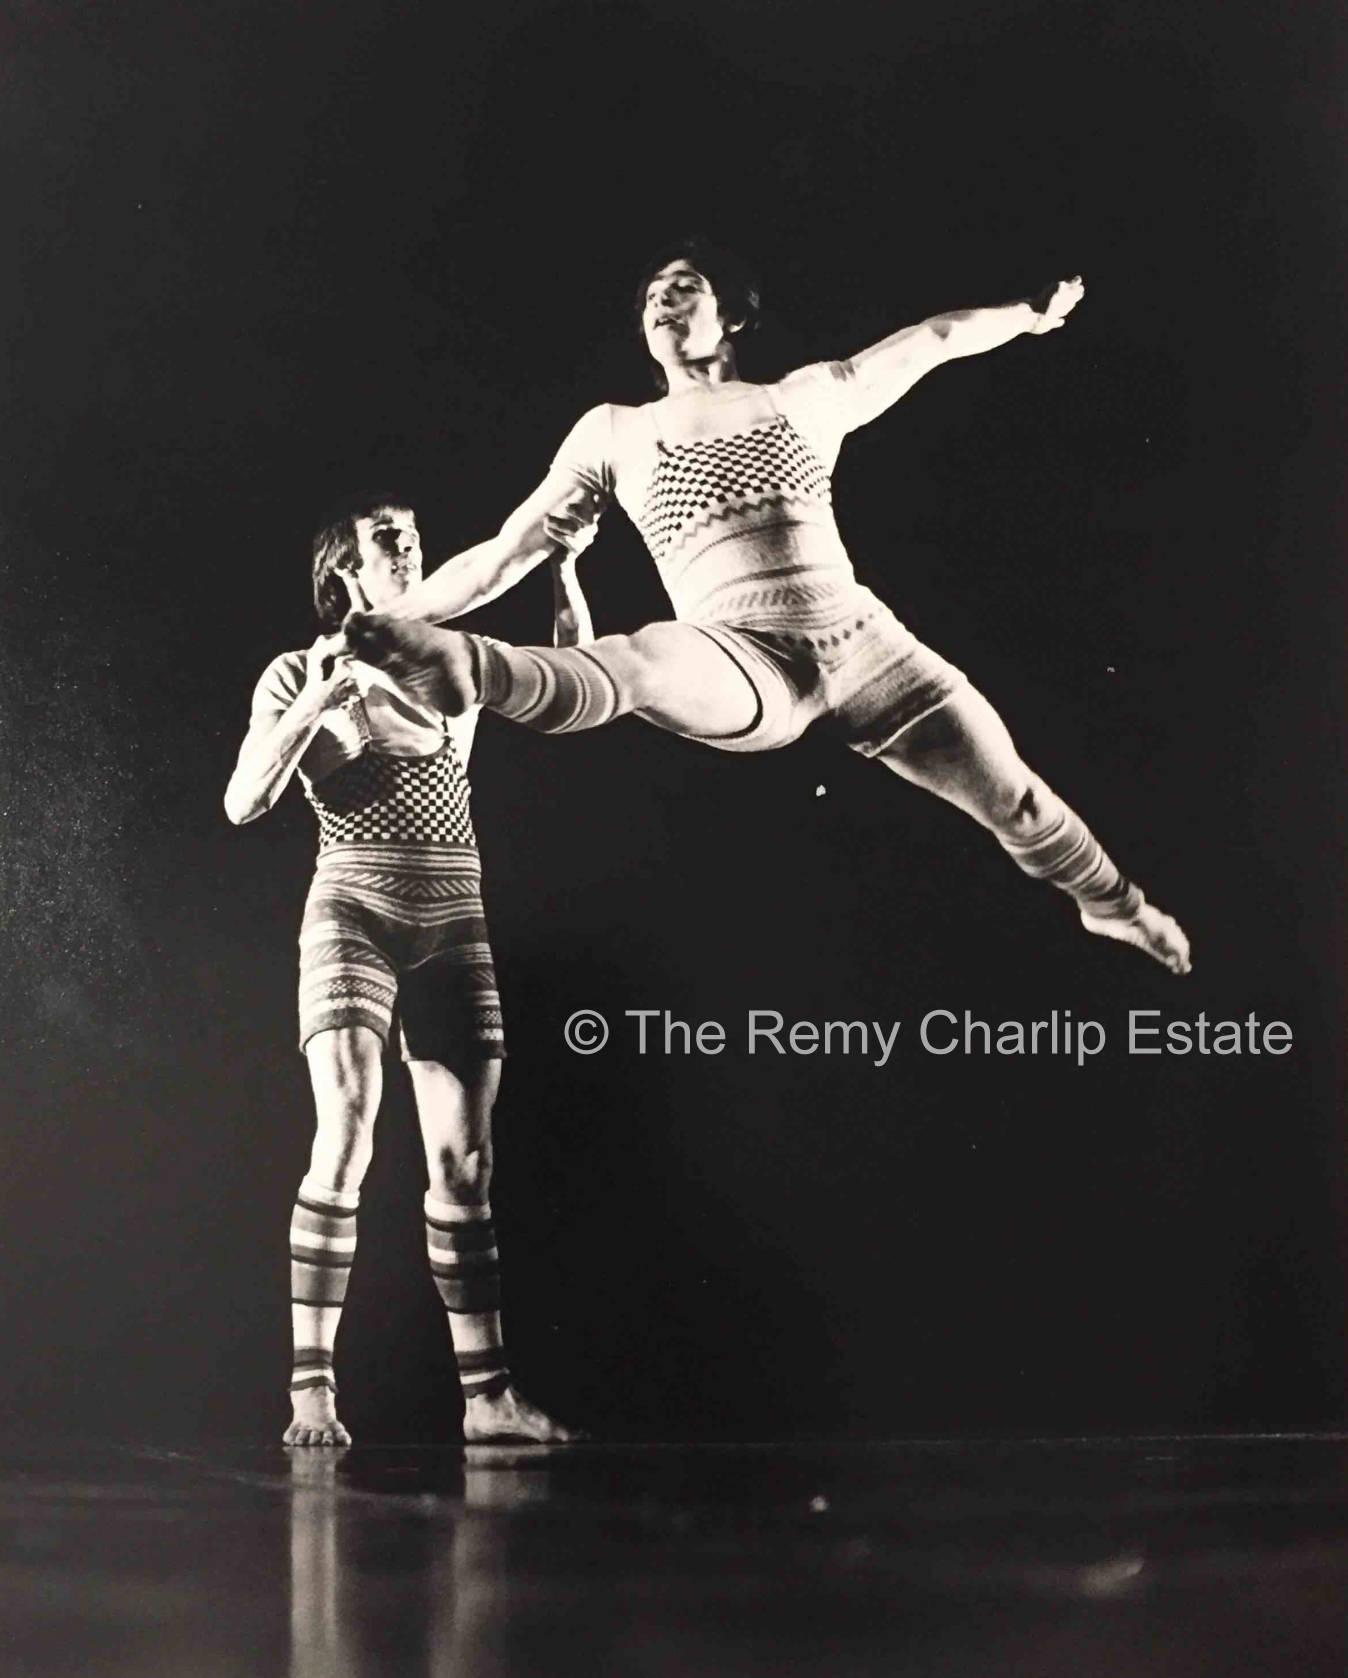 """Mad River"" 1 (1974) London Contemporary Dance Theater; Choreography, Remy Charlip; Performers: Patrick Harding-Irmer, Anthony van Laast; Costume Design: Bill Gibb; Photo: Anthony Crickmay"